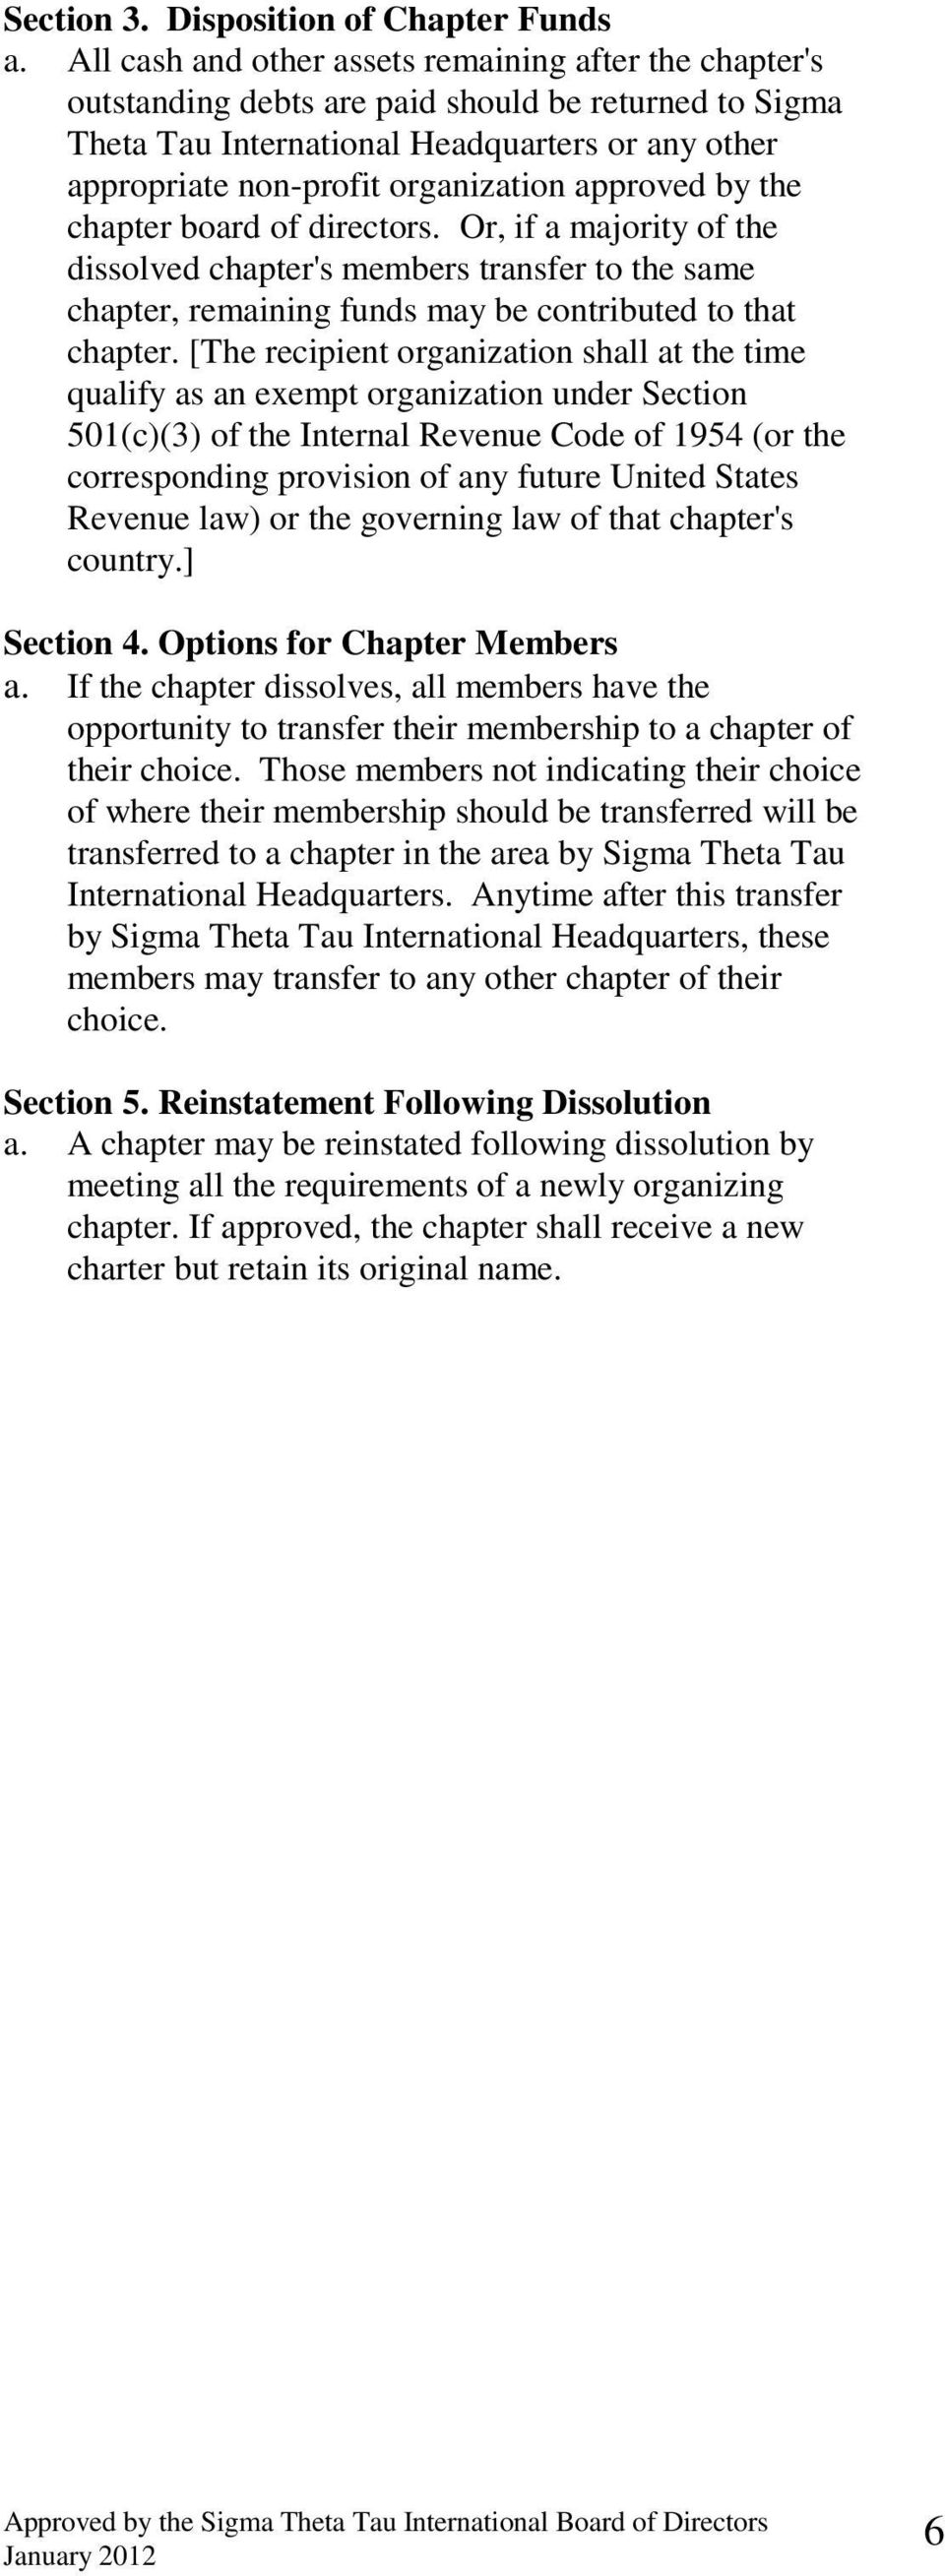 approved by the chapter board of directors. Or, if a majority of the dissolved chapter's members transfer to the same chapter, remaining funds may be contributed to that chapter.